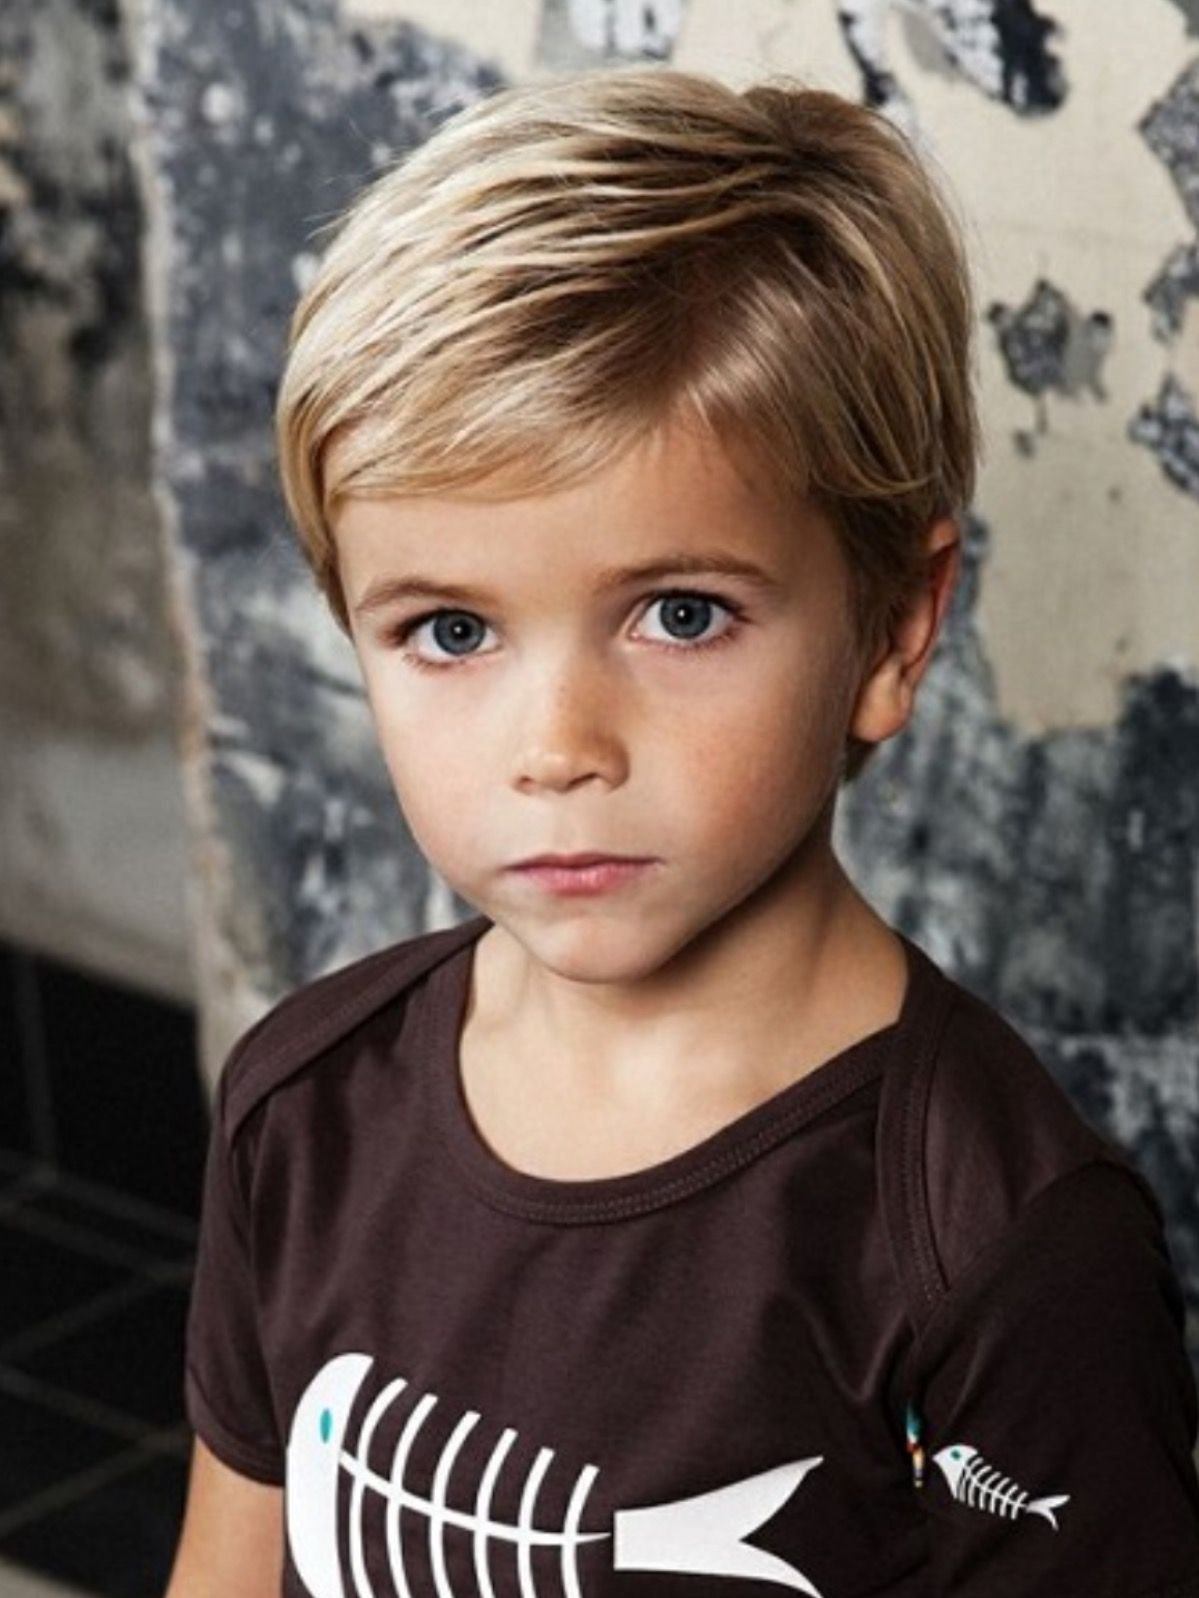 New 11 Year Old Boy Hairstyles Fade Haircut Ideas With Pictures